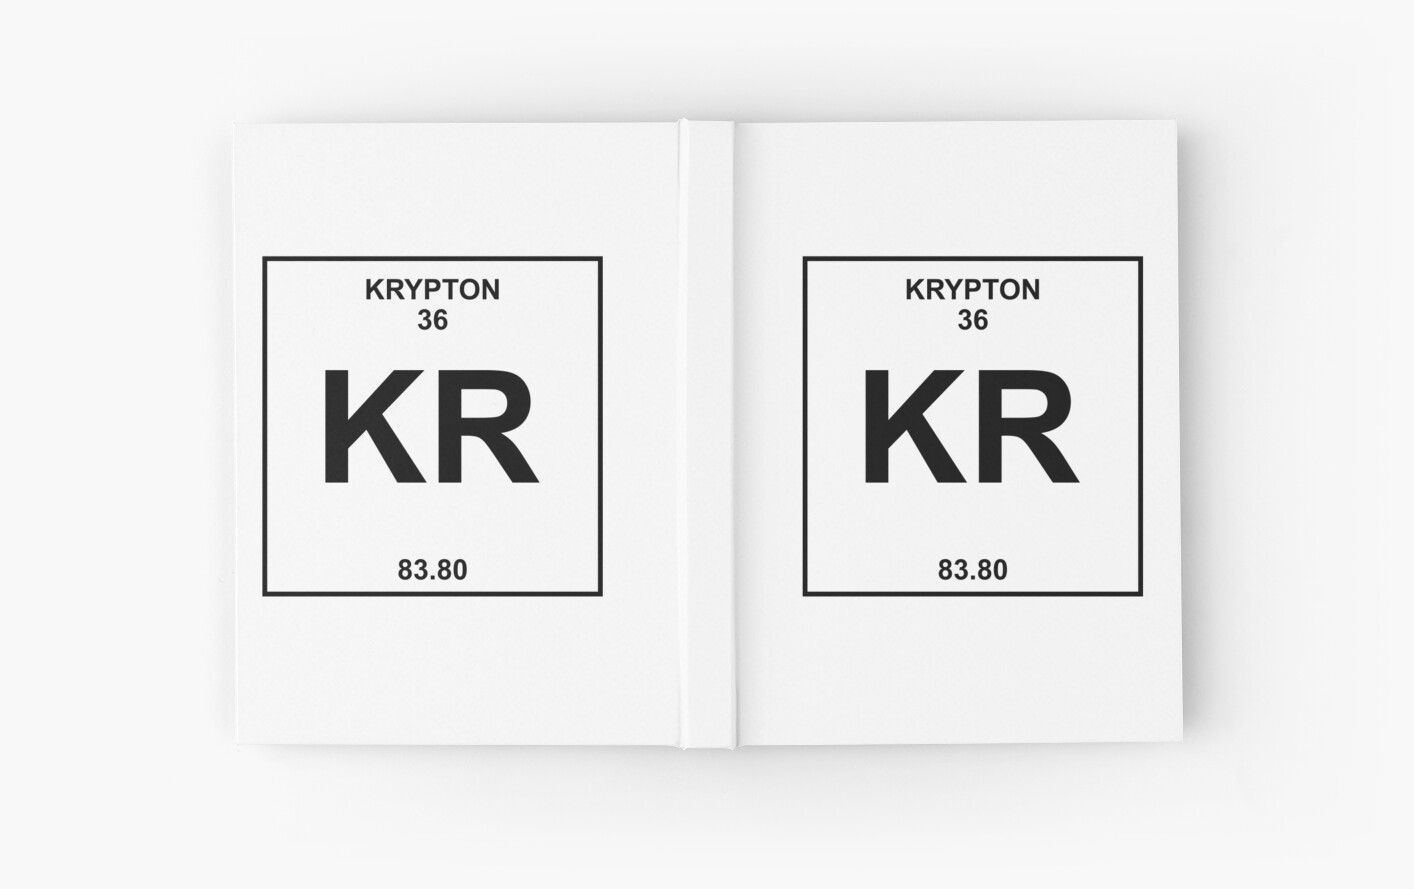 Krypton on the periodic table images periodic table images kr symbol periodic table images periodic table images krypton periodic table images periodic table images krypton gamestrikefo Image collections